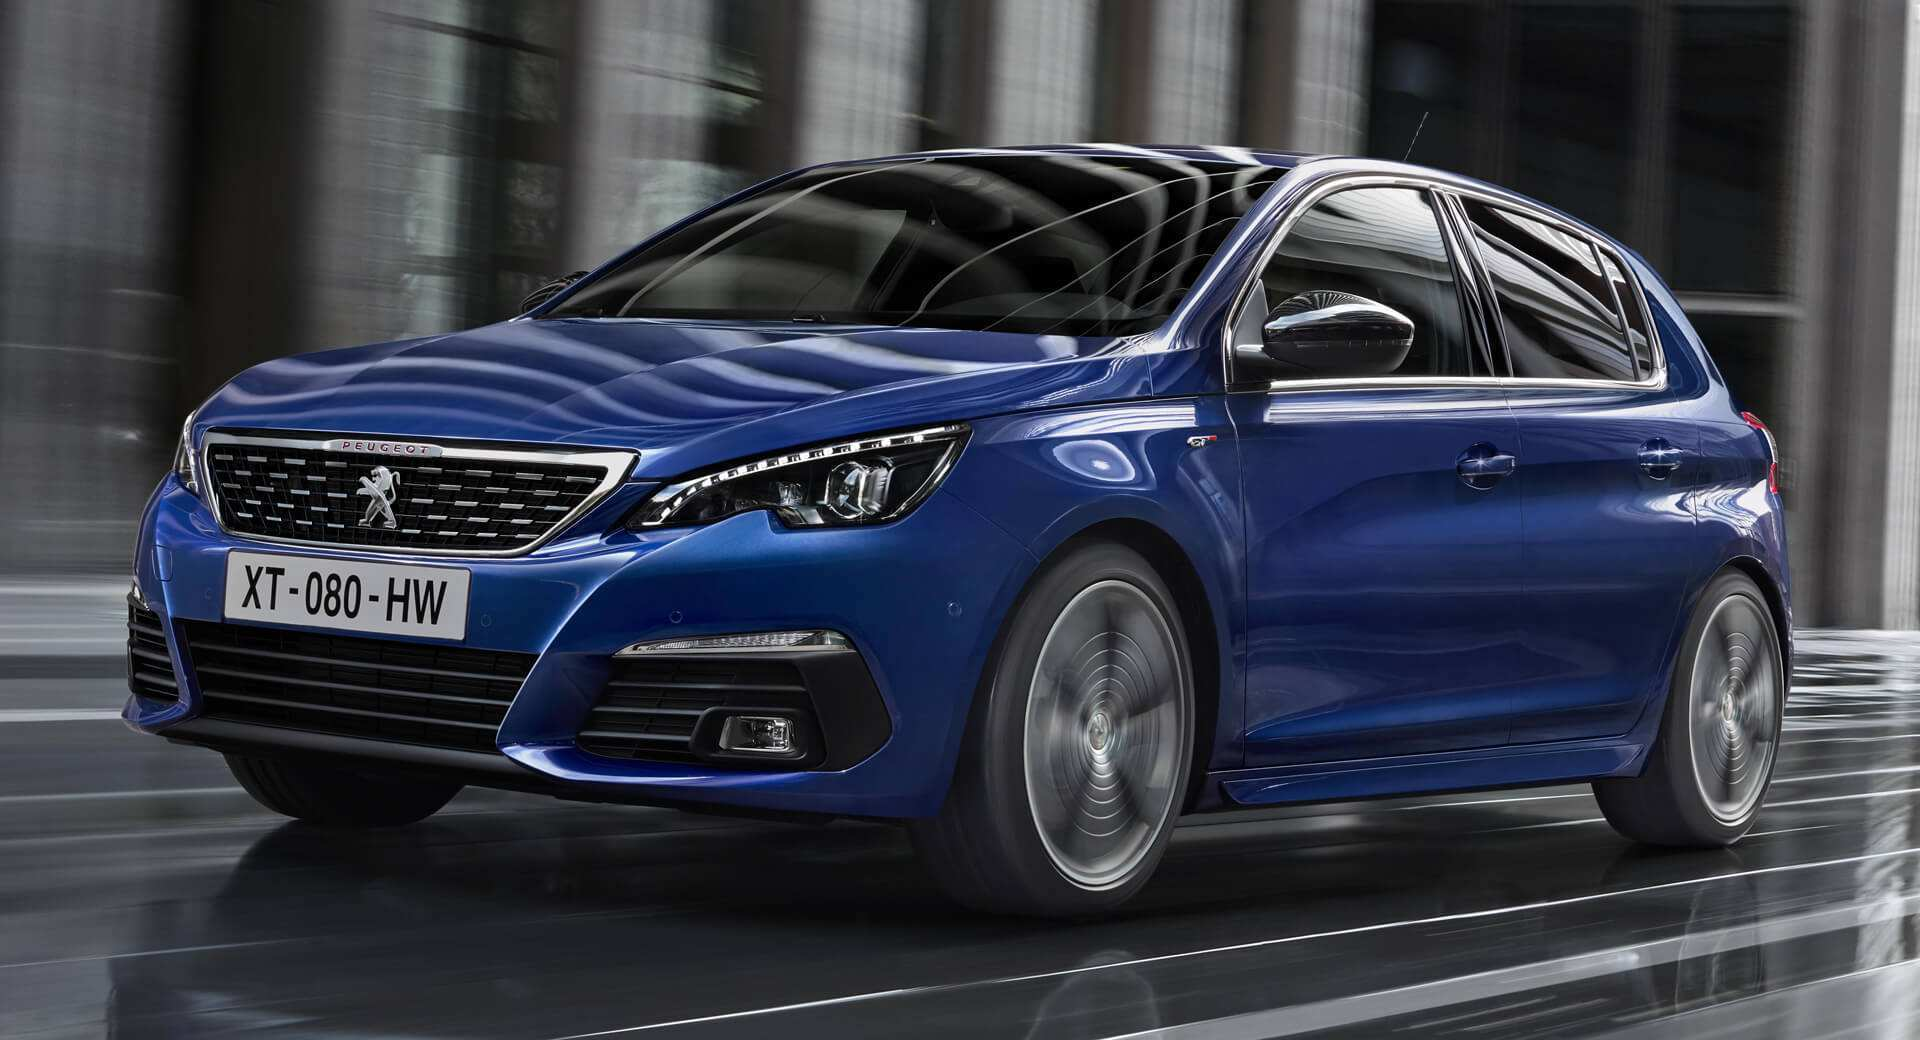 33 All New 2020 Peugeot 308 Interior